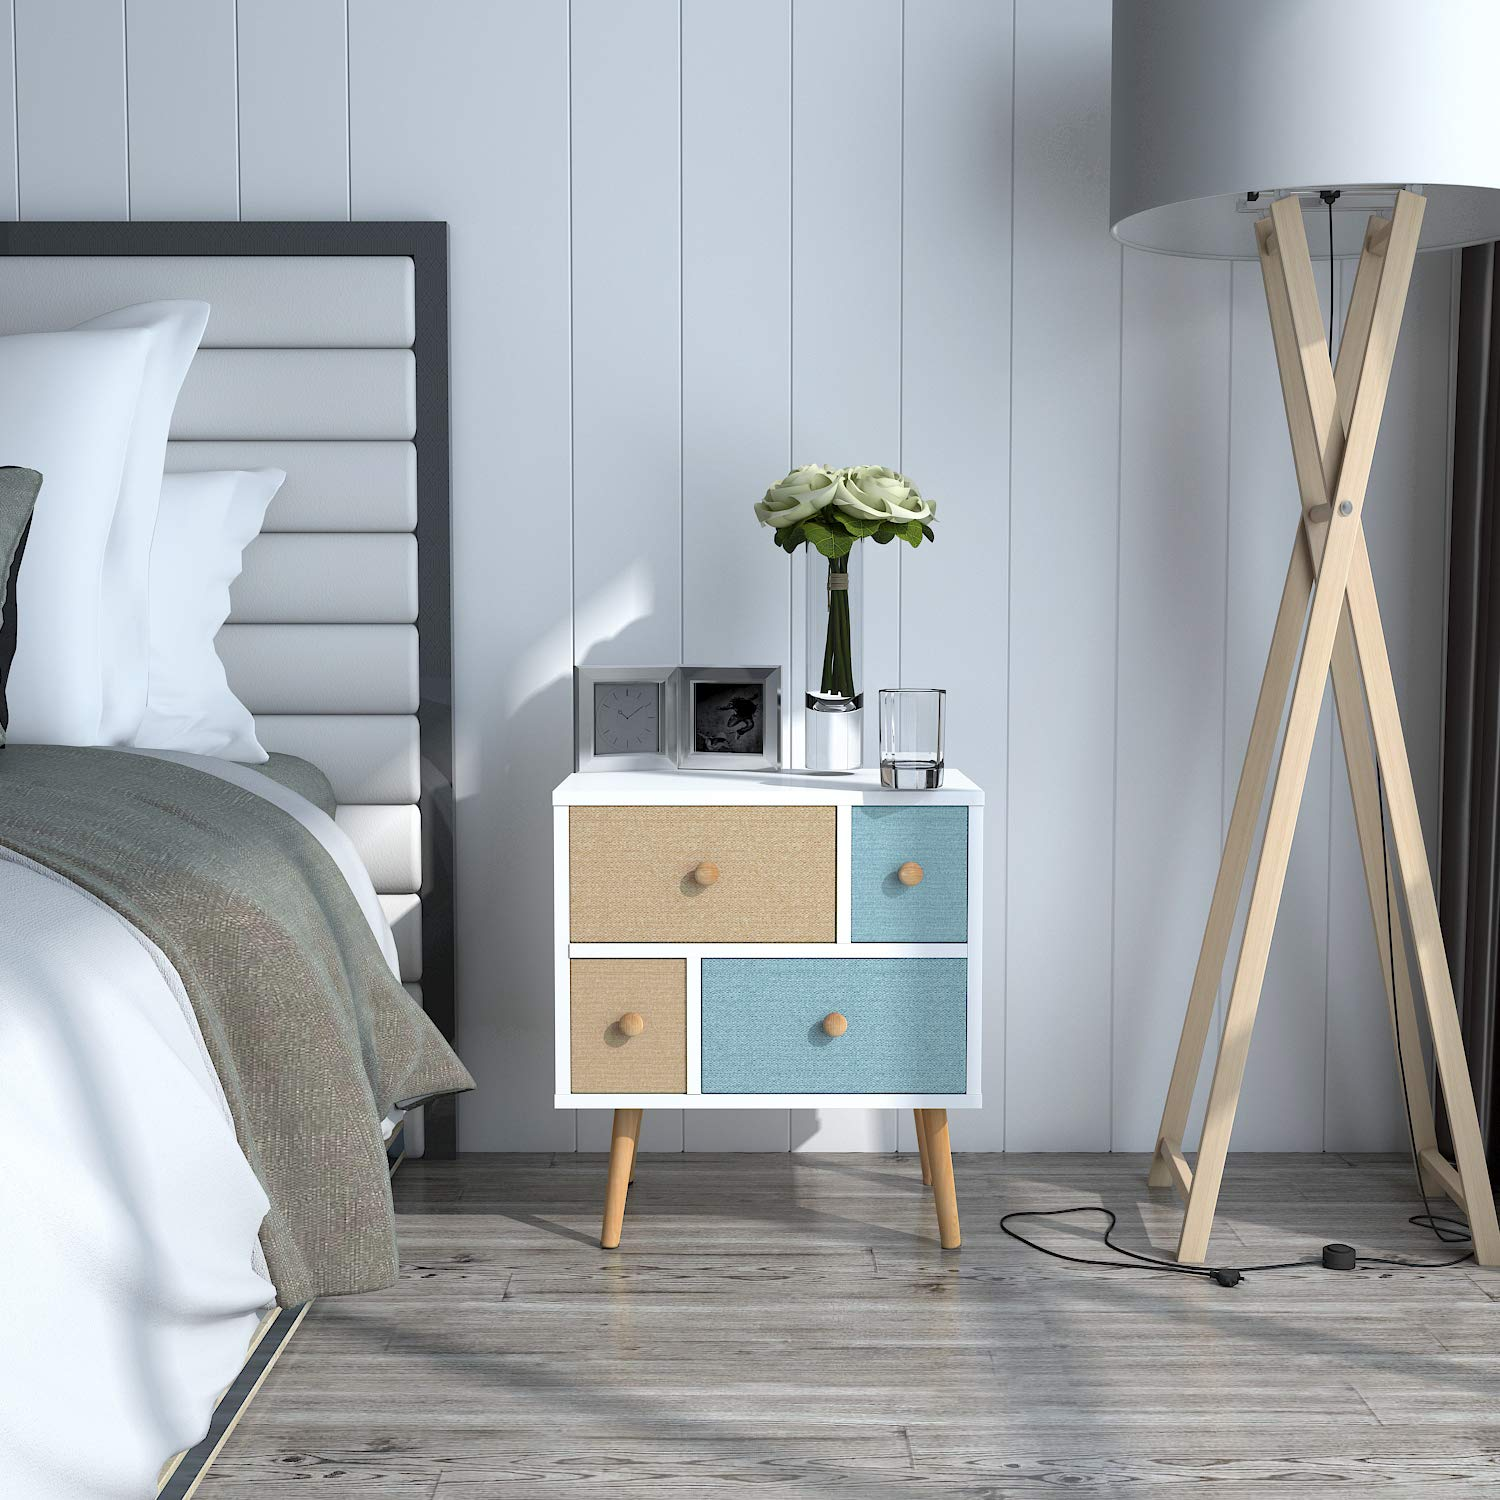 Nightstand with 4 Fabric Drawers, Bedroom Side Table Bedside Table, Easy to Assemble, Sturdy and Durable, Small and Cute, White, 18.9 x 11.8 x 21.7 in